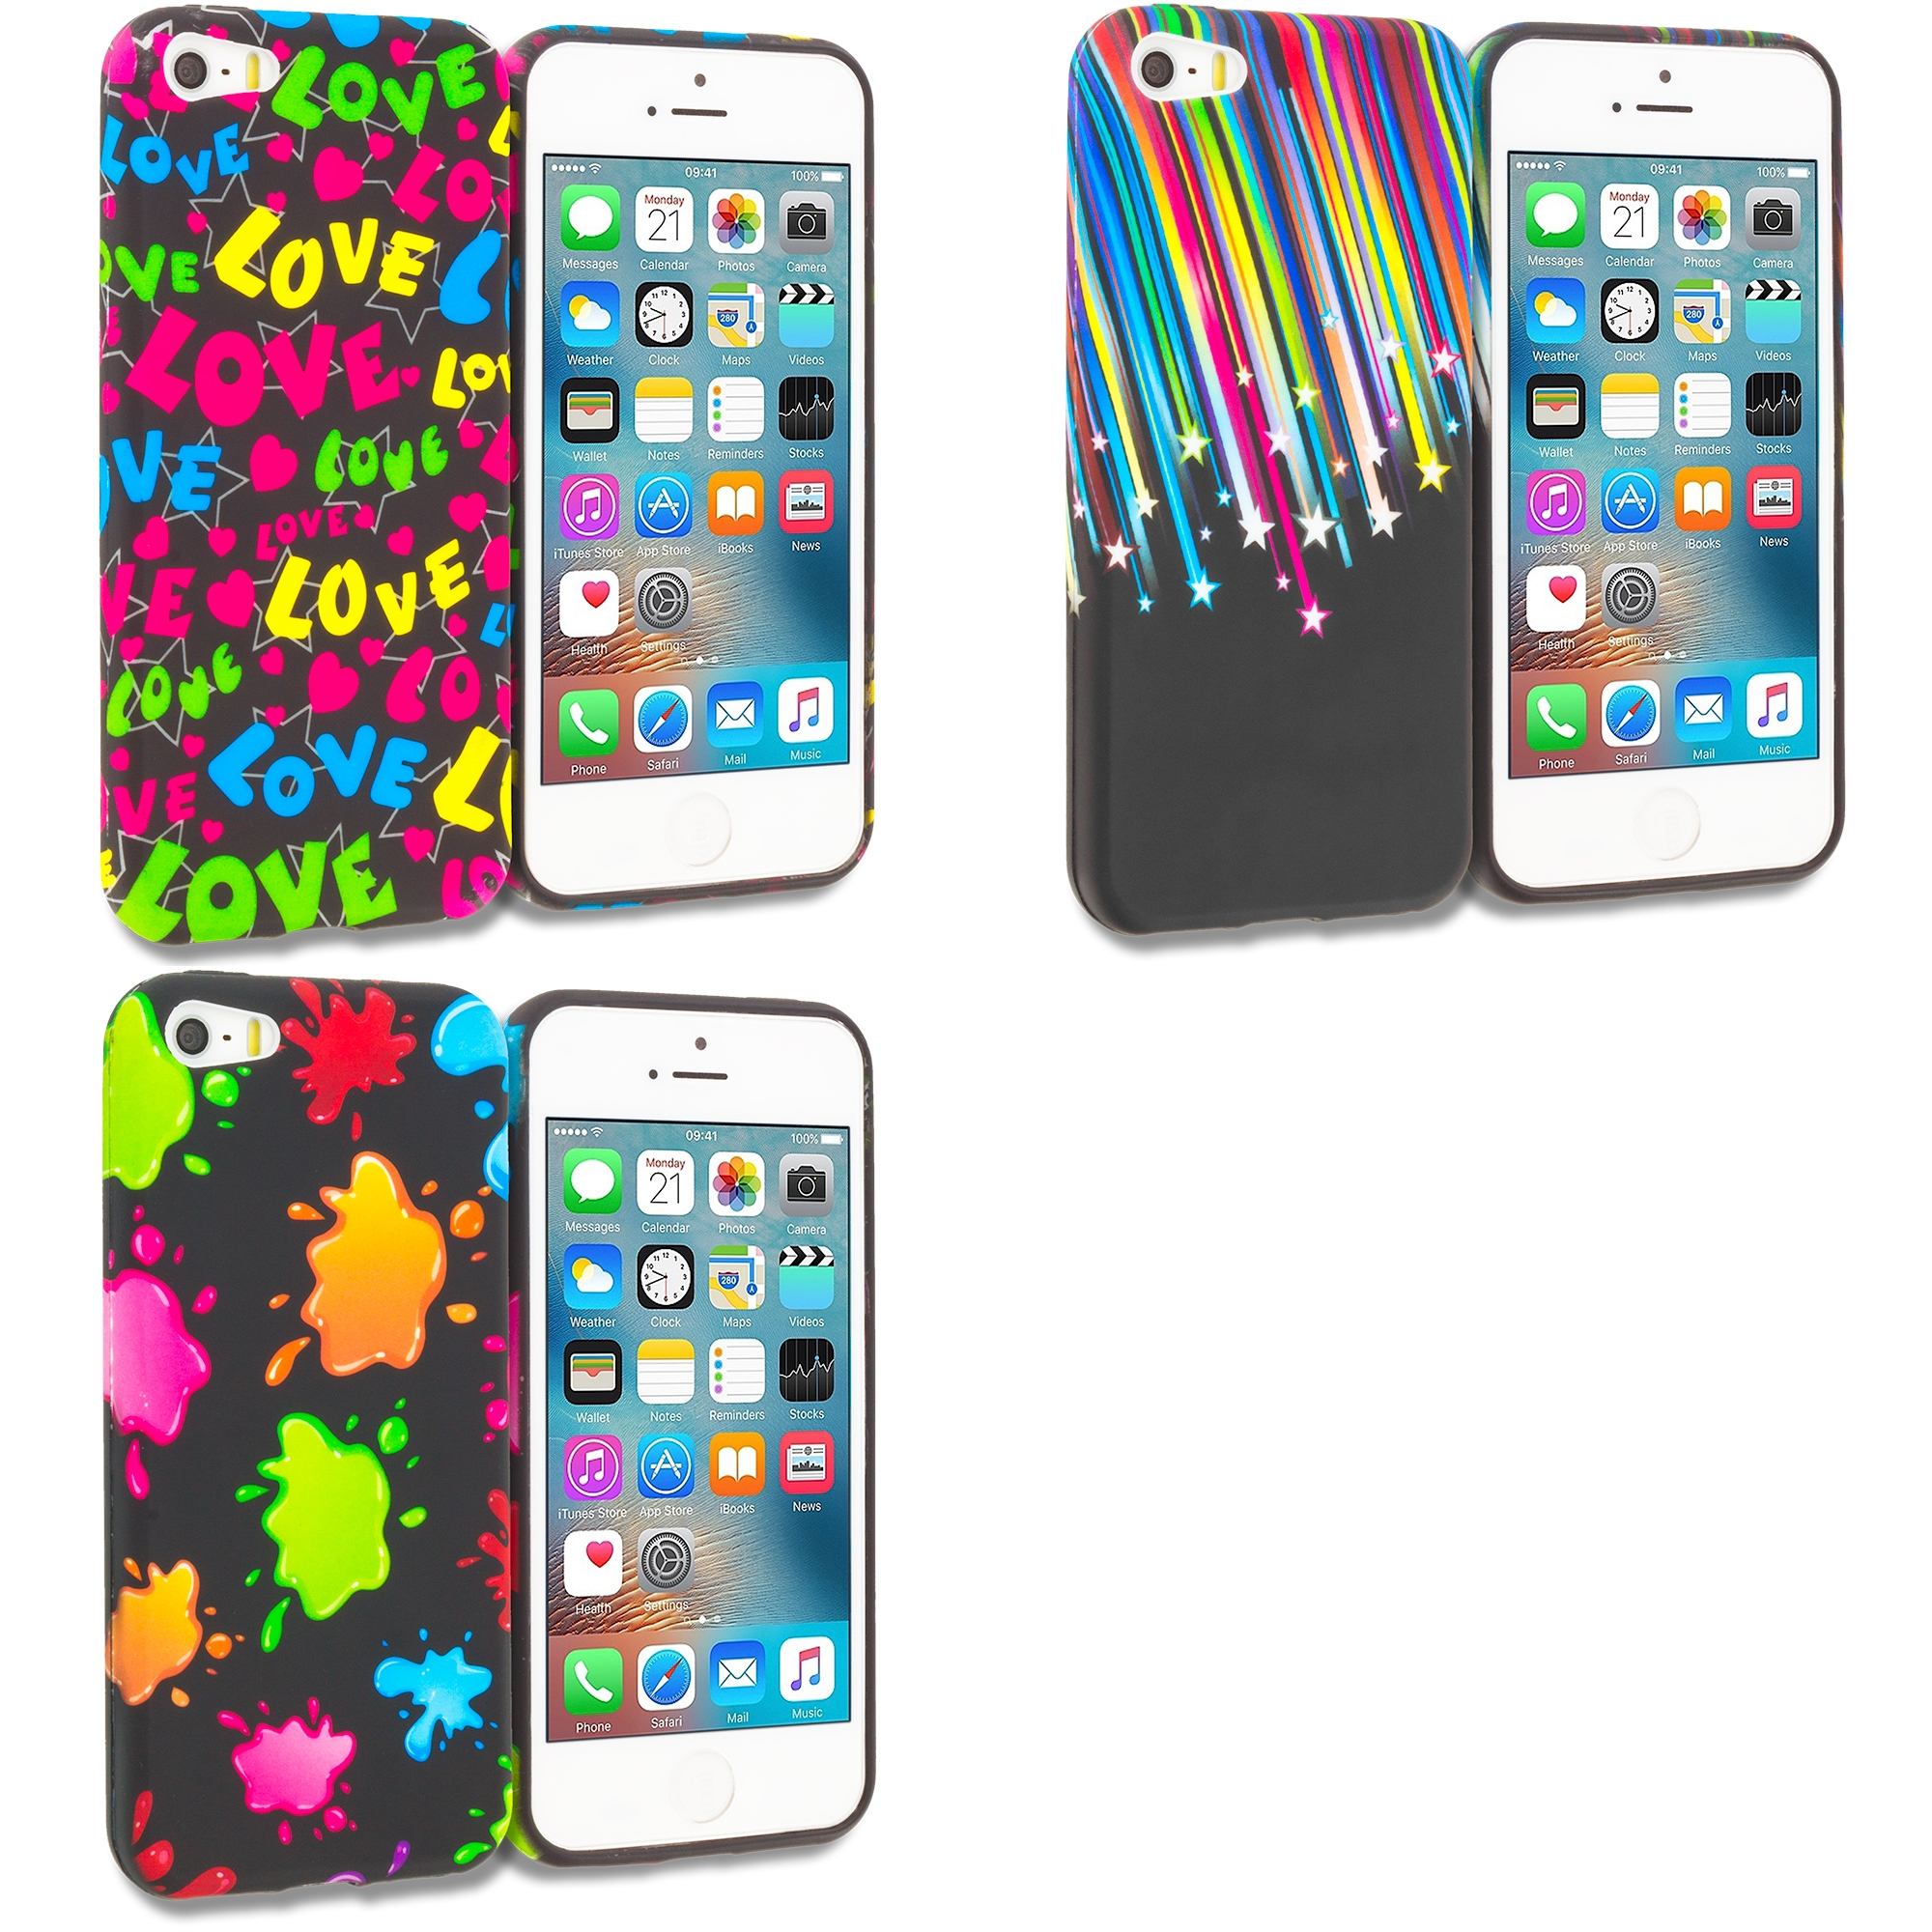 Apple iPhone 5/5S/SE Combo Pack : Colorful Love on Black TPU Design Soft Rubber Case Cover